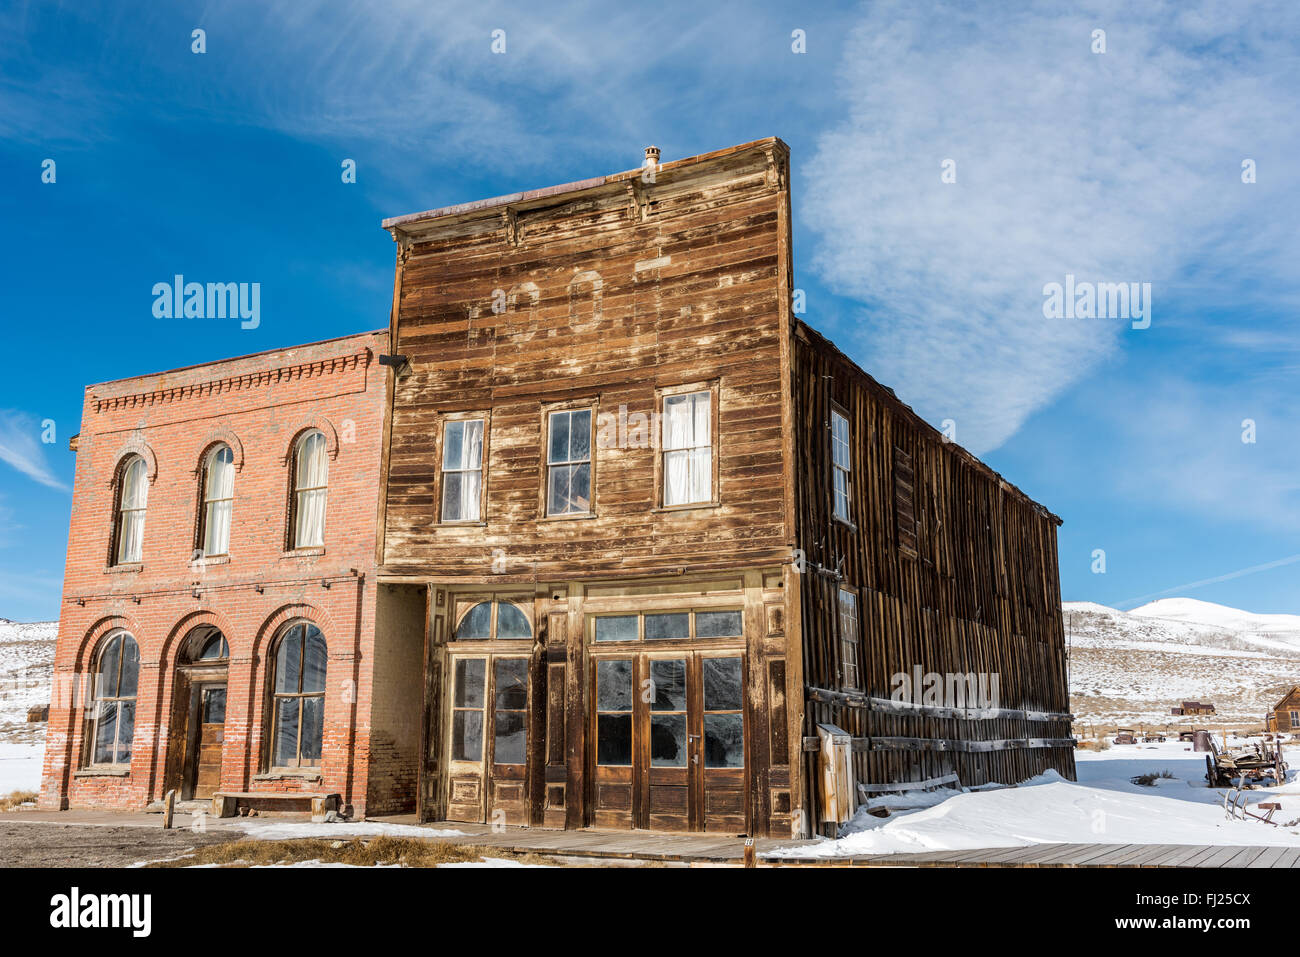 Bodie is an original mining town from the late 1800's. - Stock Image